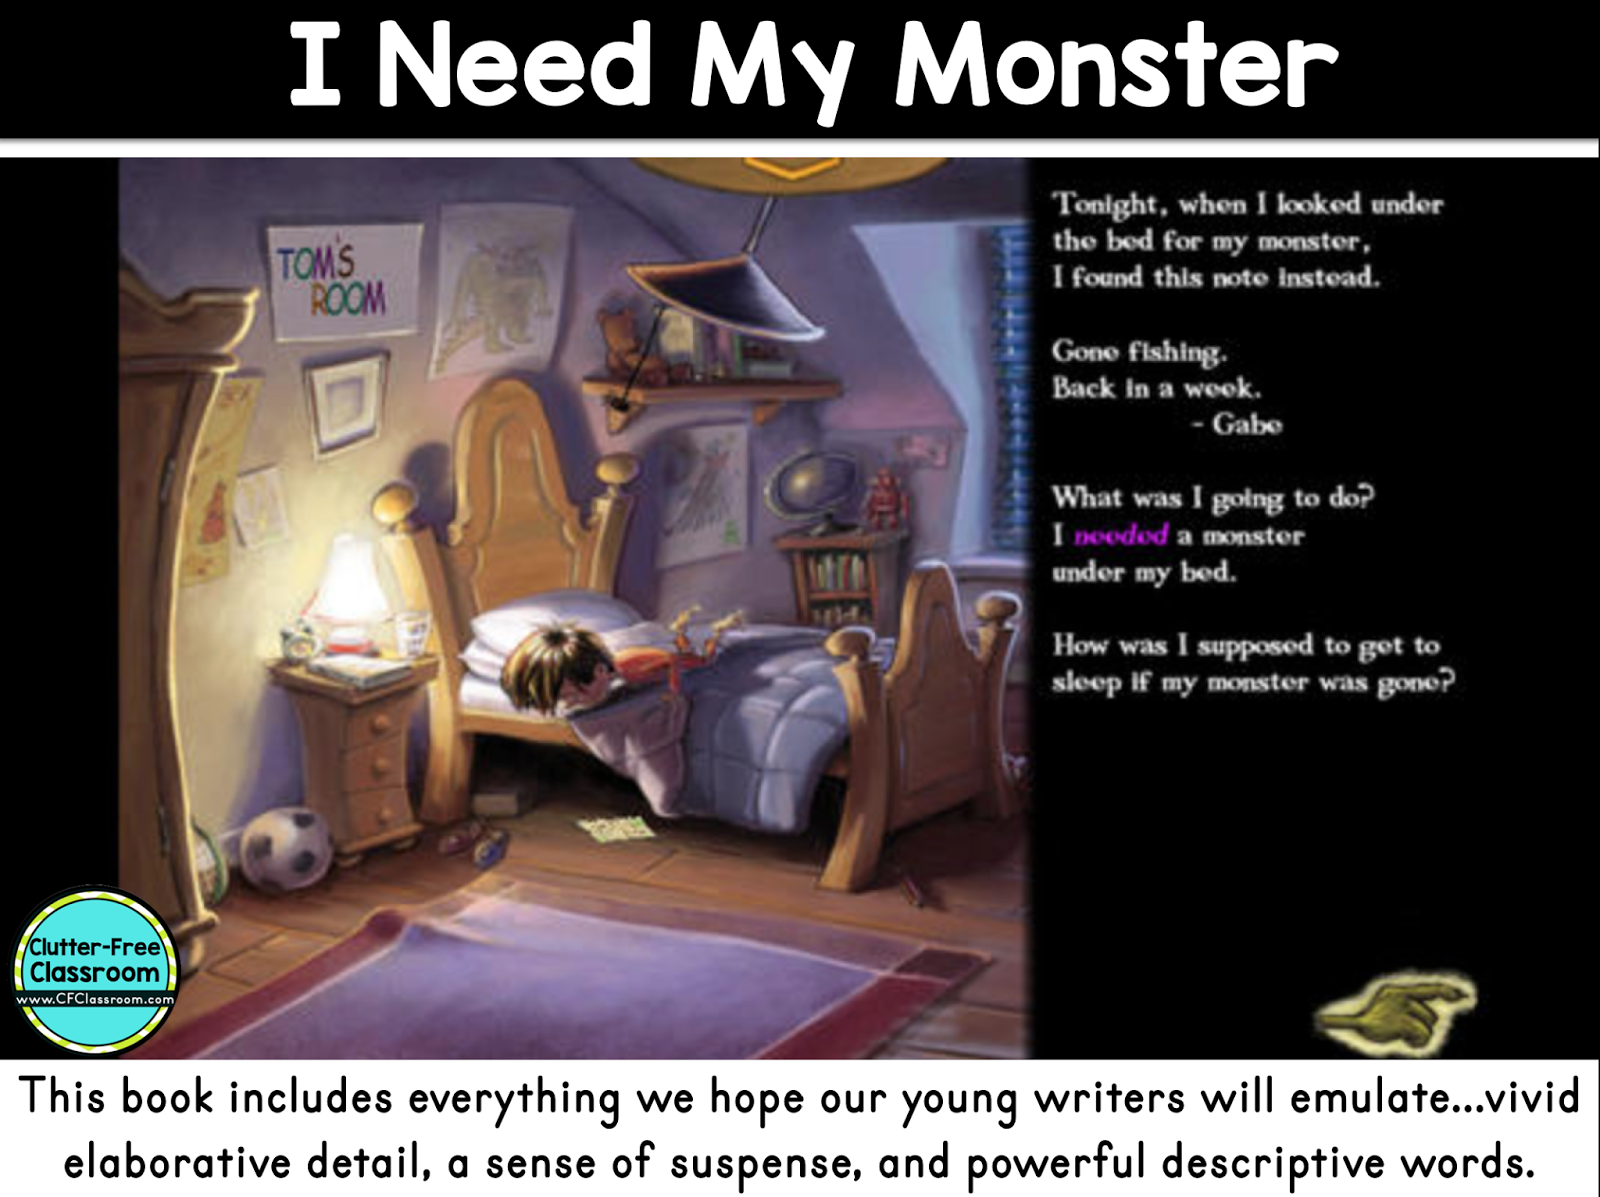 There are many Halloween books for kids that are great mentor texts for writing narratives. This post spotlights 3 of the best Halloween stories to help you teach writing to elementary students and shares ideas for activities to increase reading comprehension.